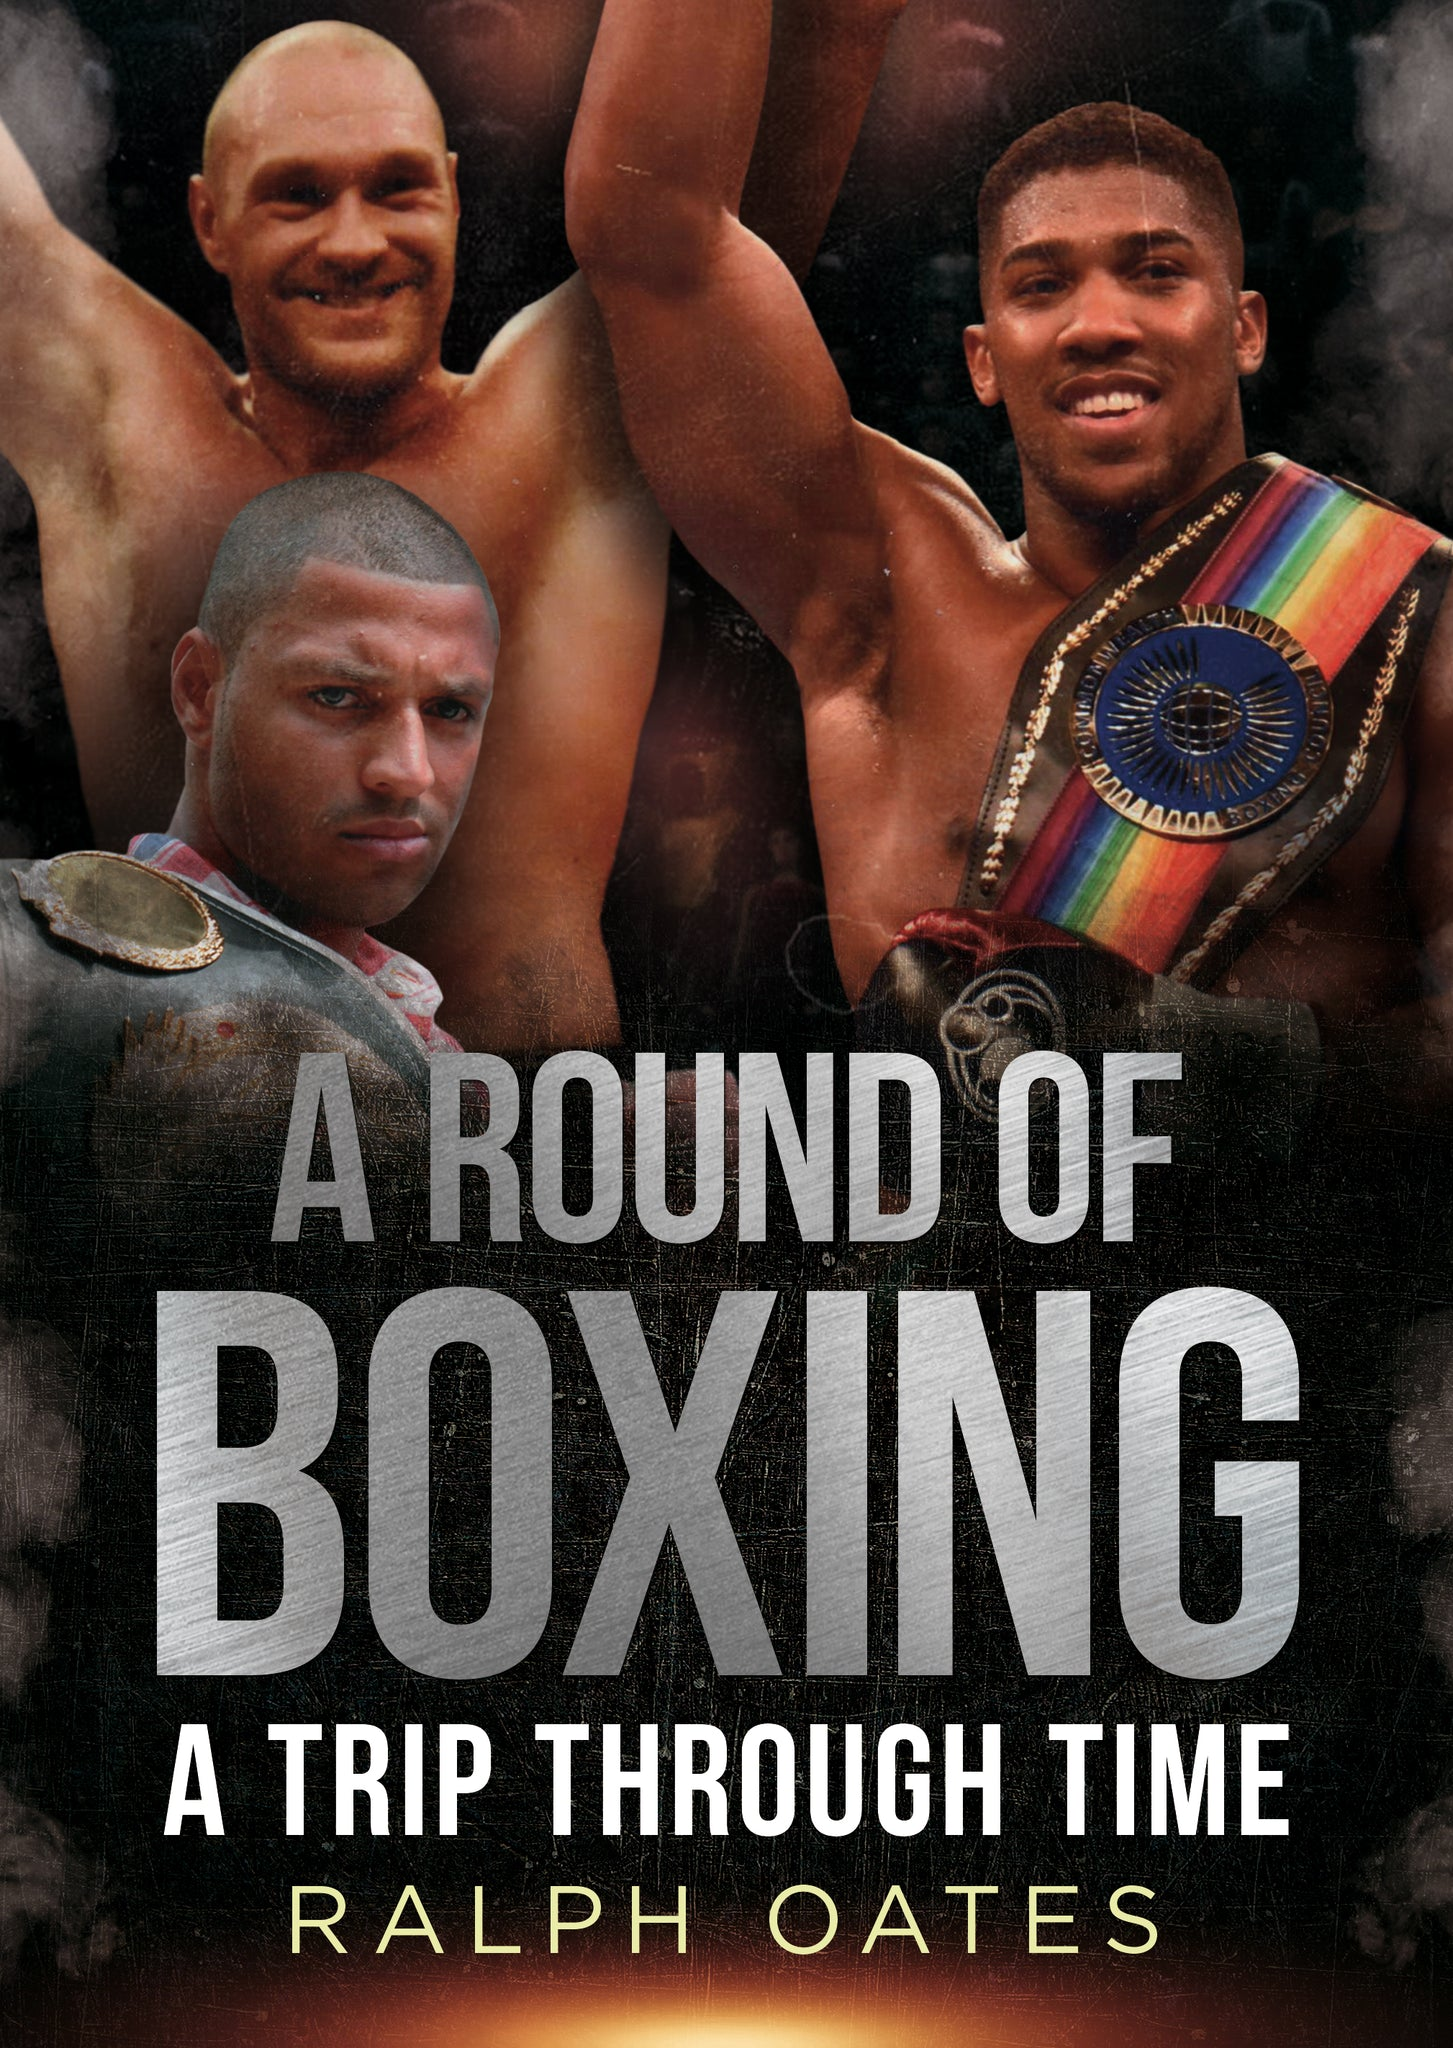 A Round of Boxing: A Trip Through Time